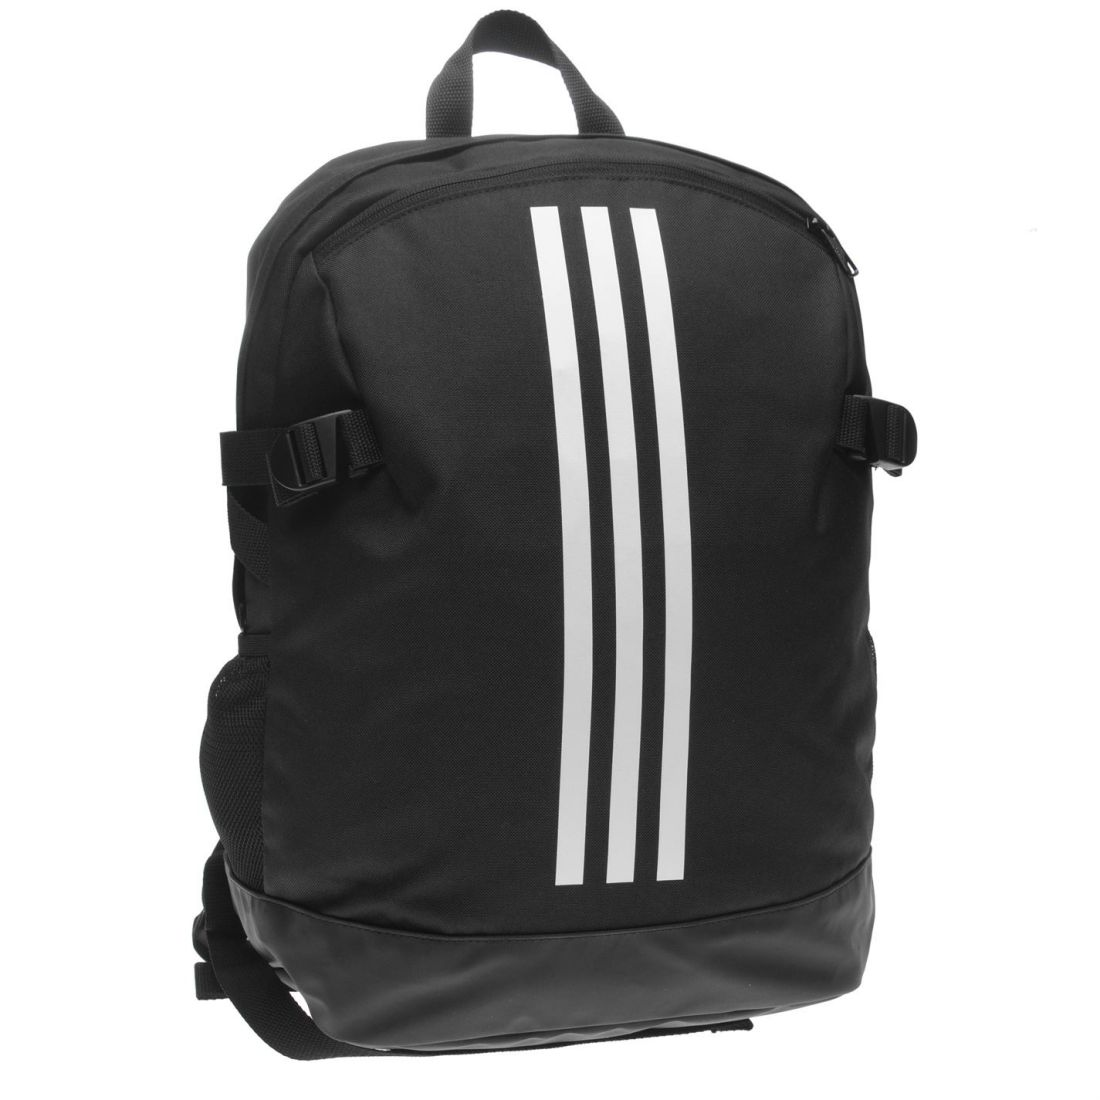 adidas BP Power IV M BR5864 Backpack Black. About this product. Stock  photo  Picture 1 of 6  Picture 2 of 6 ... 750dfdd6a72d8